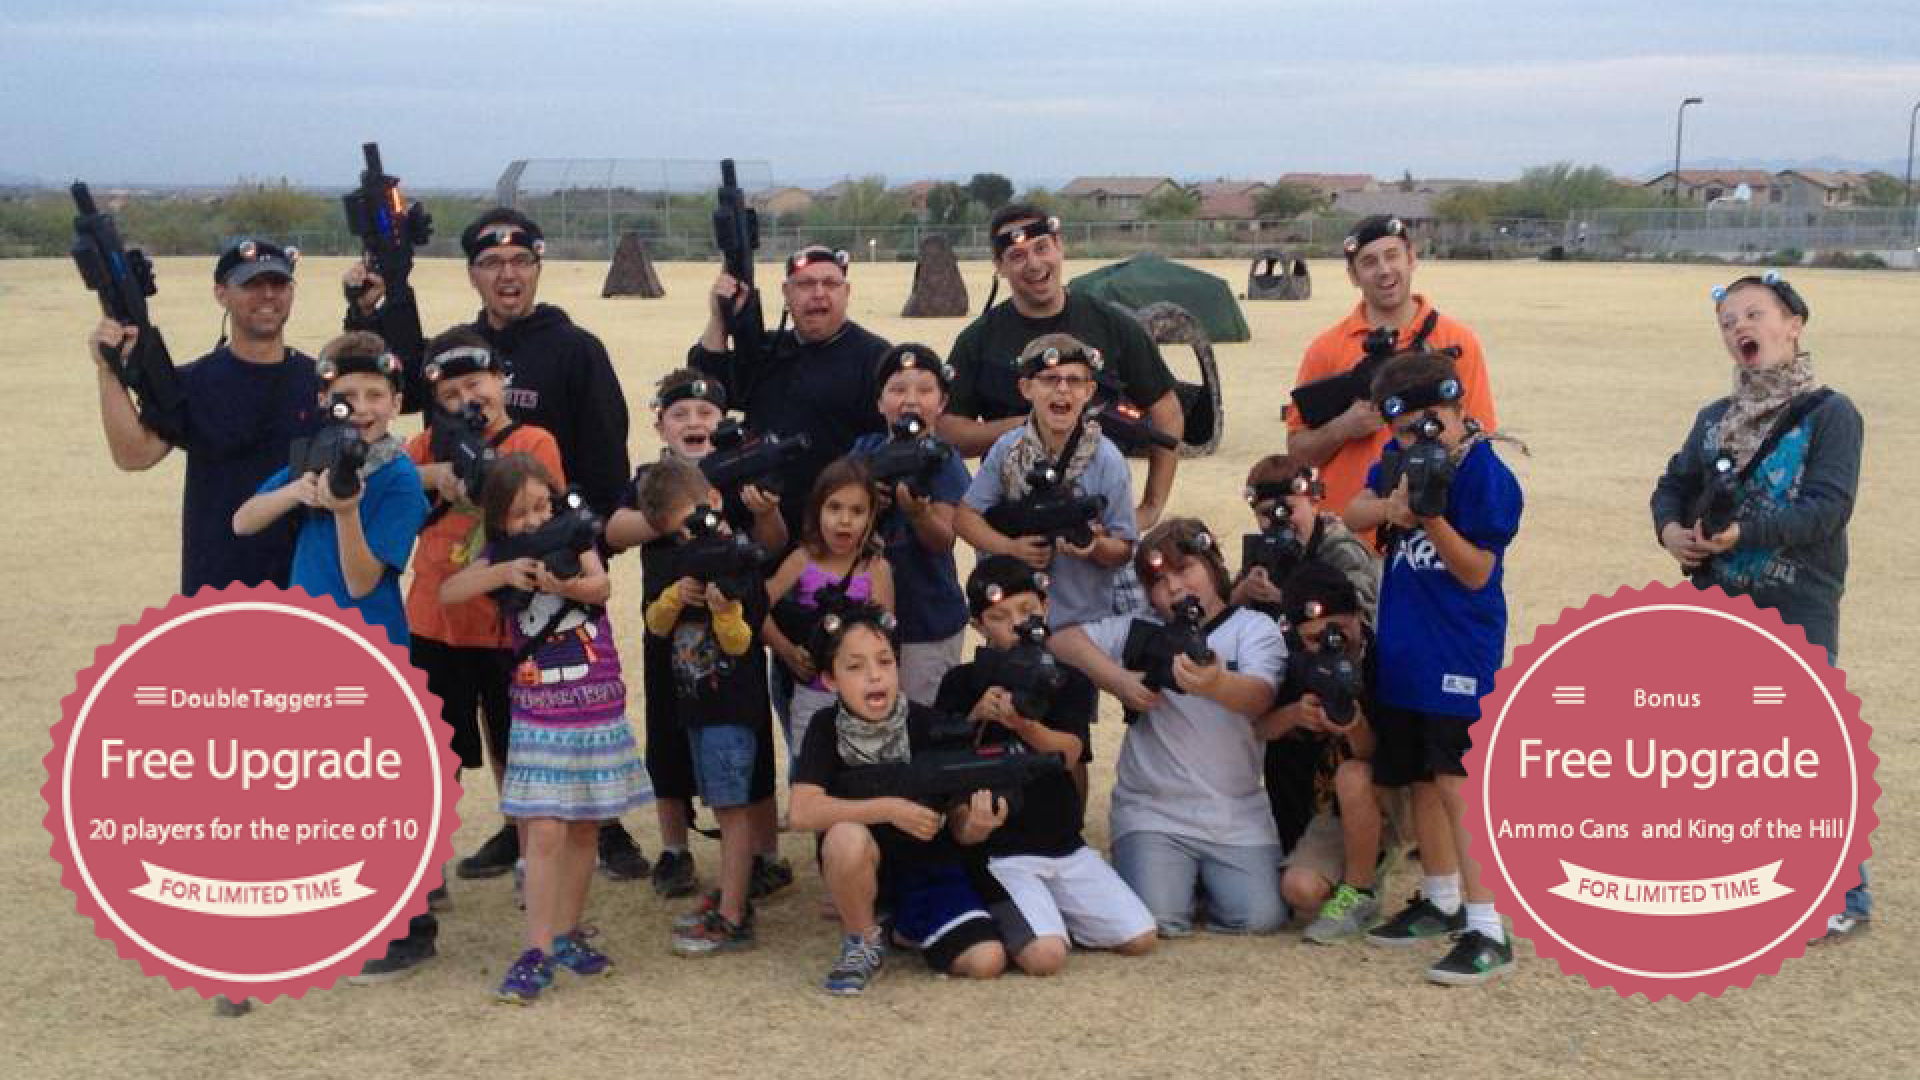 birthday party ideas in arizona | laser tag arizona | laser tag in arizona